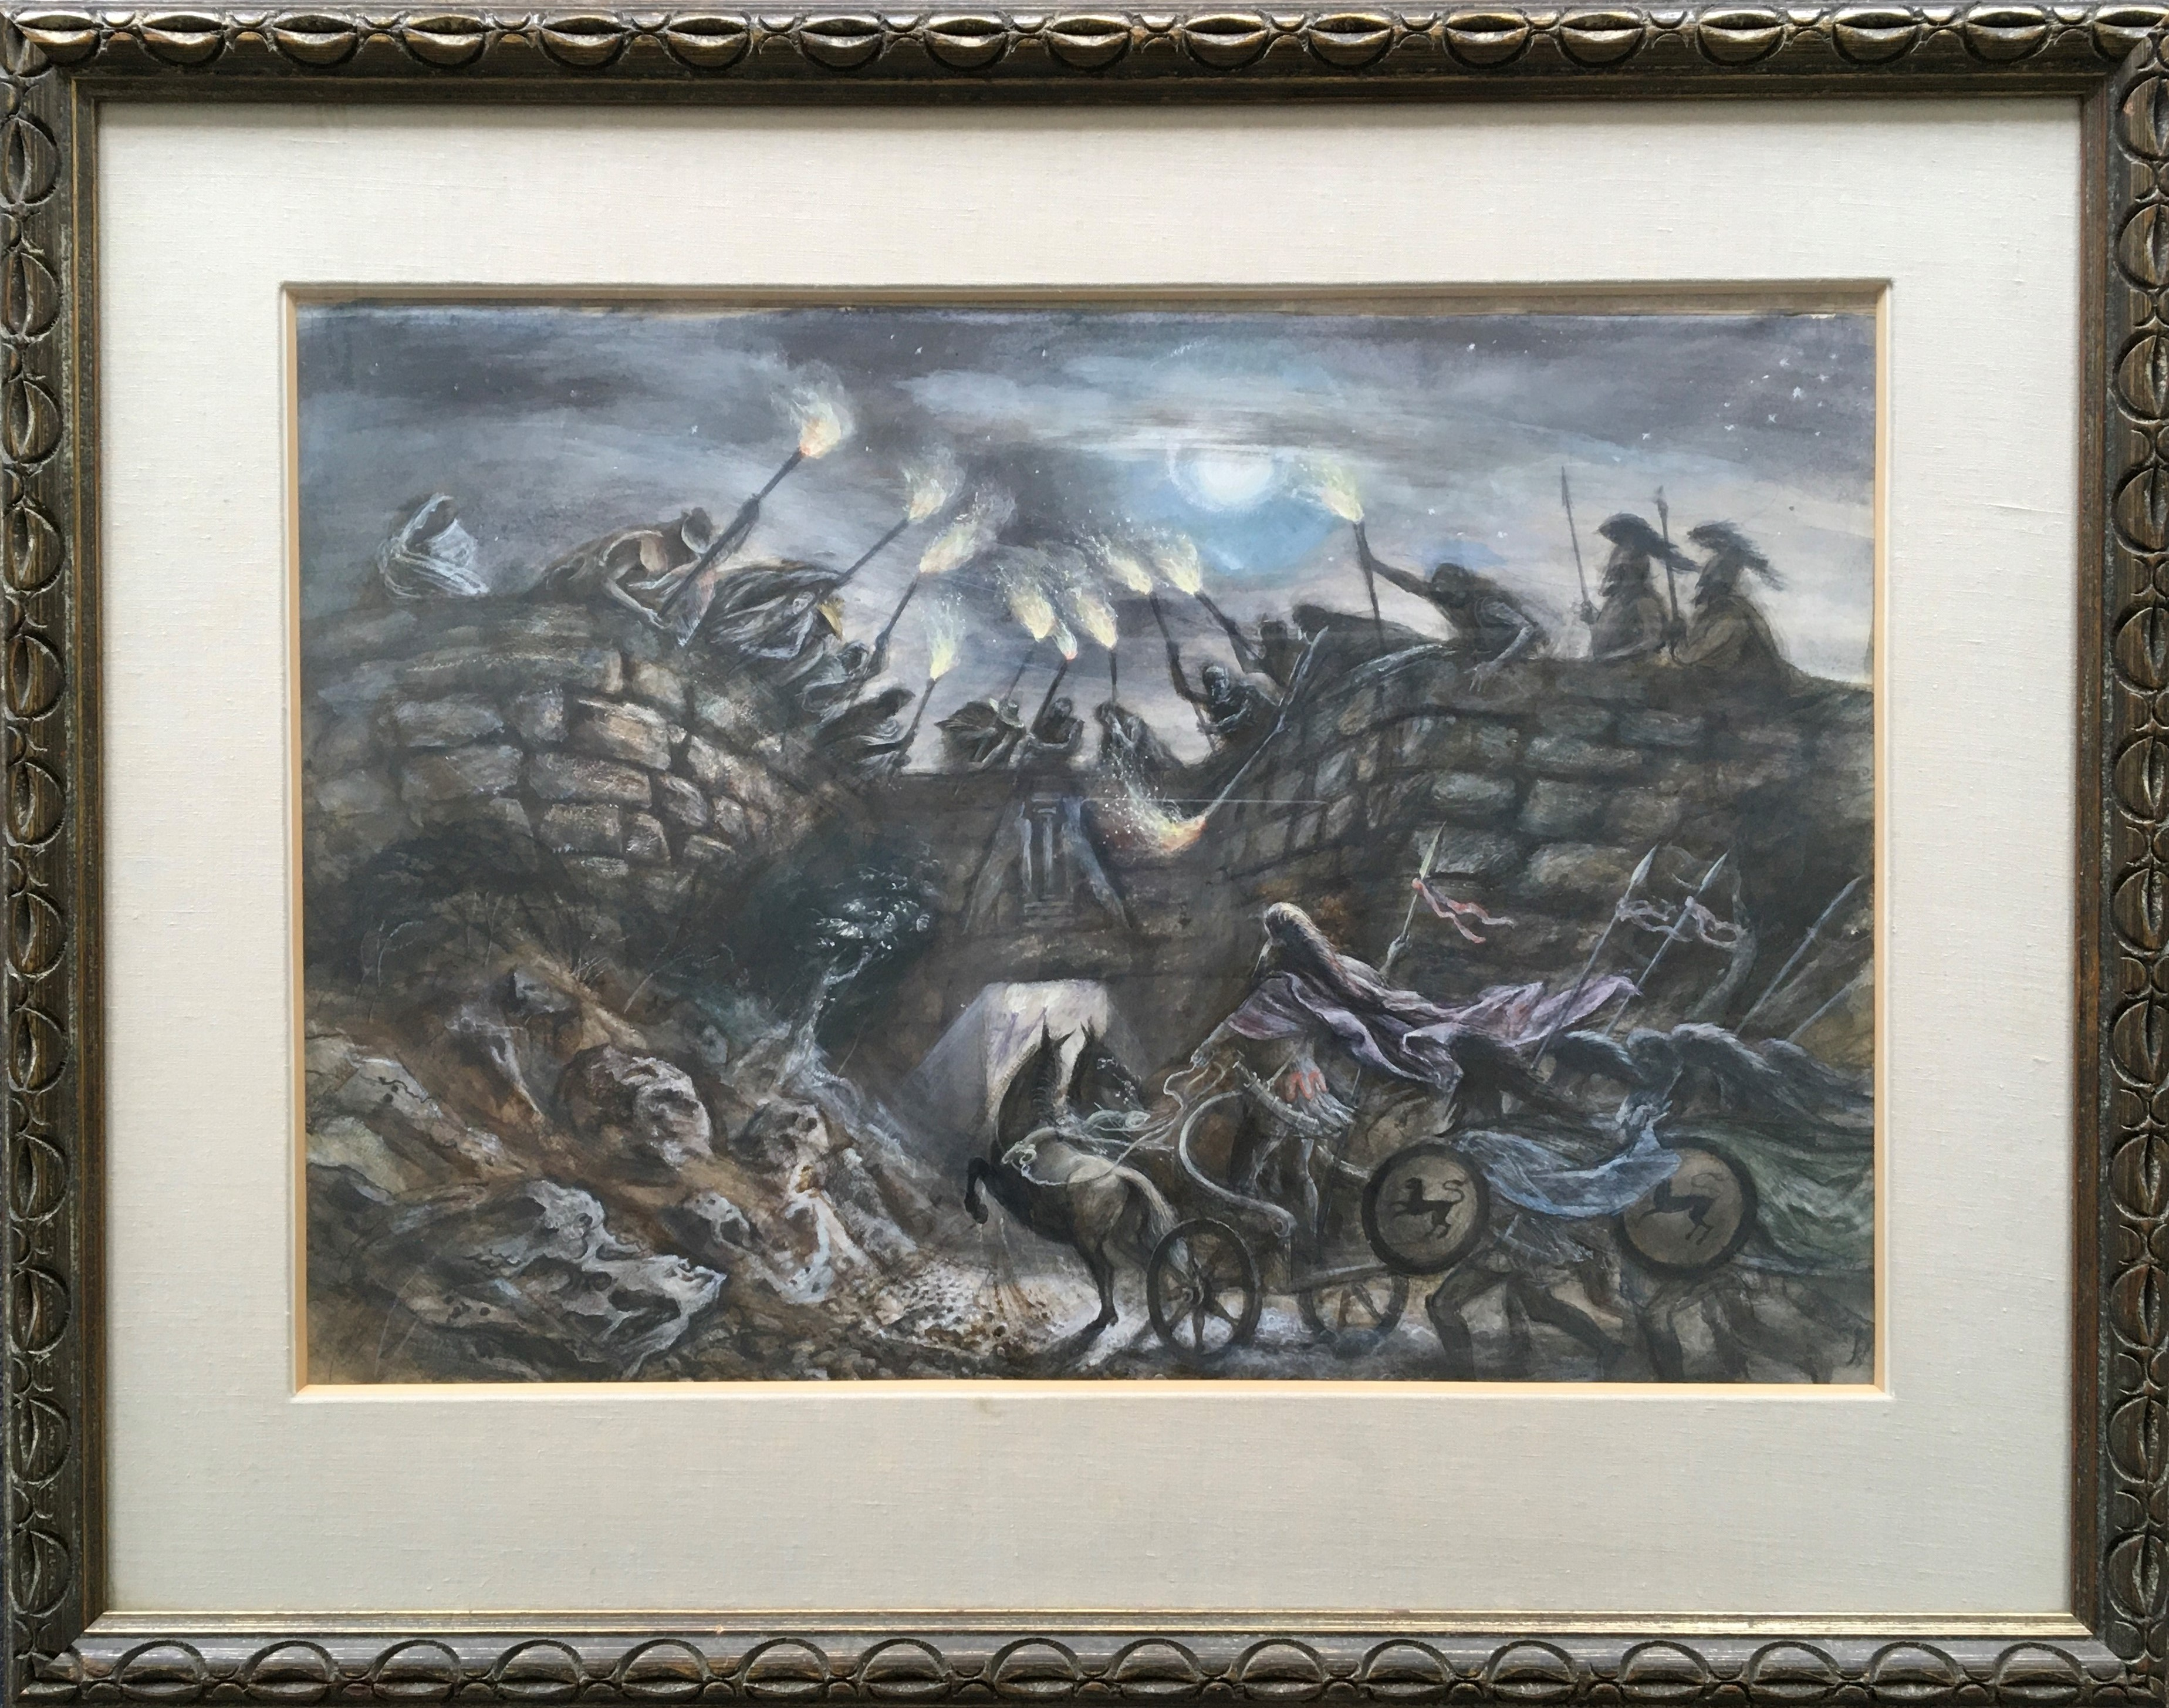 ALAN SORRELL. Framed, signed and titled 'Agamemnon's Homecoming', Greek mythological scene with